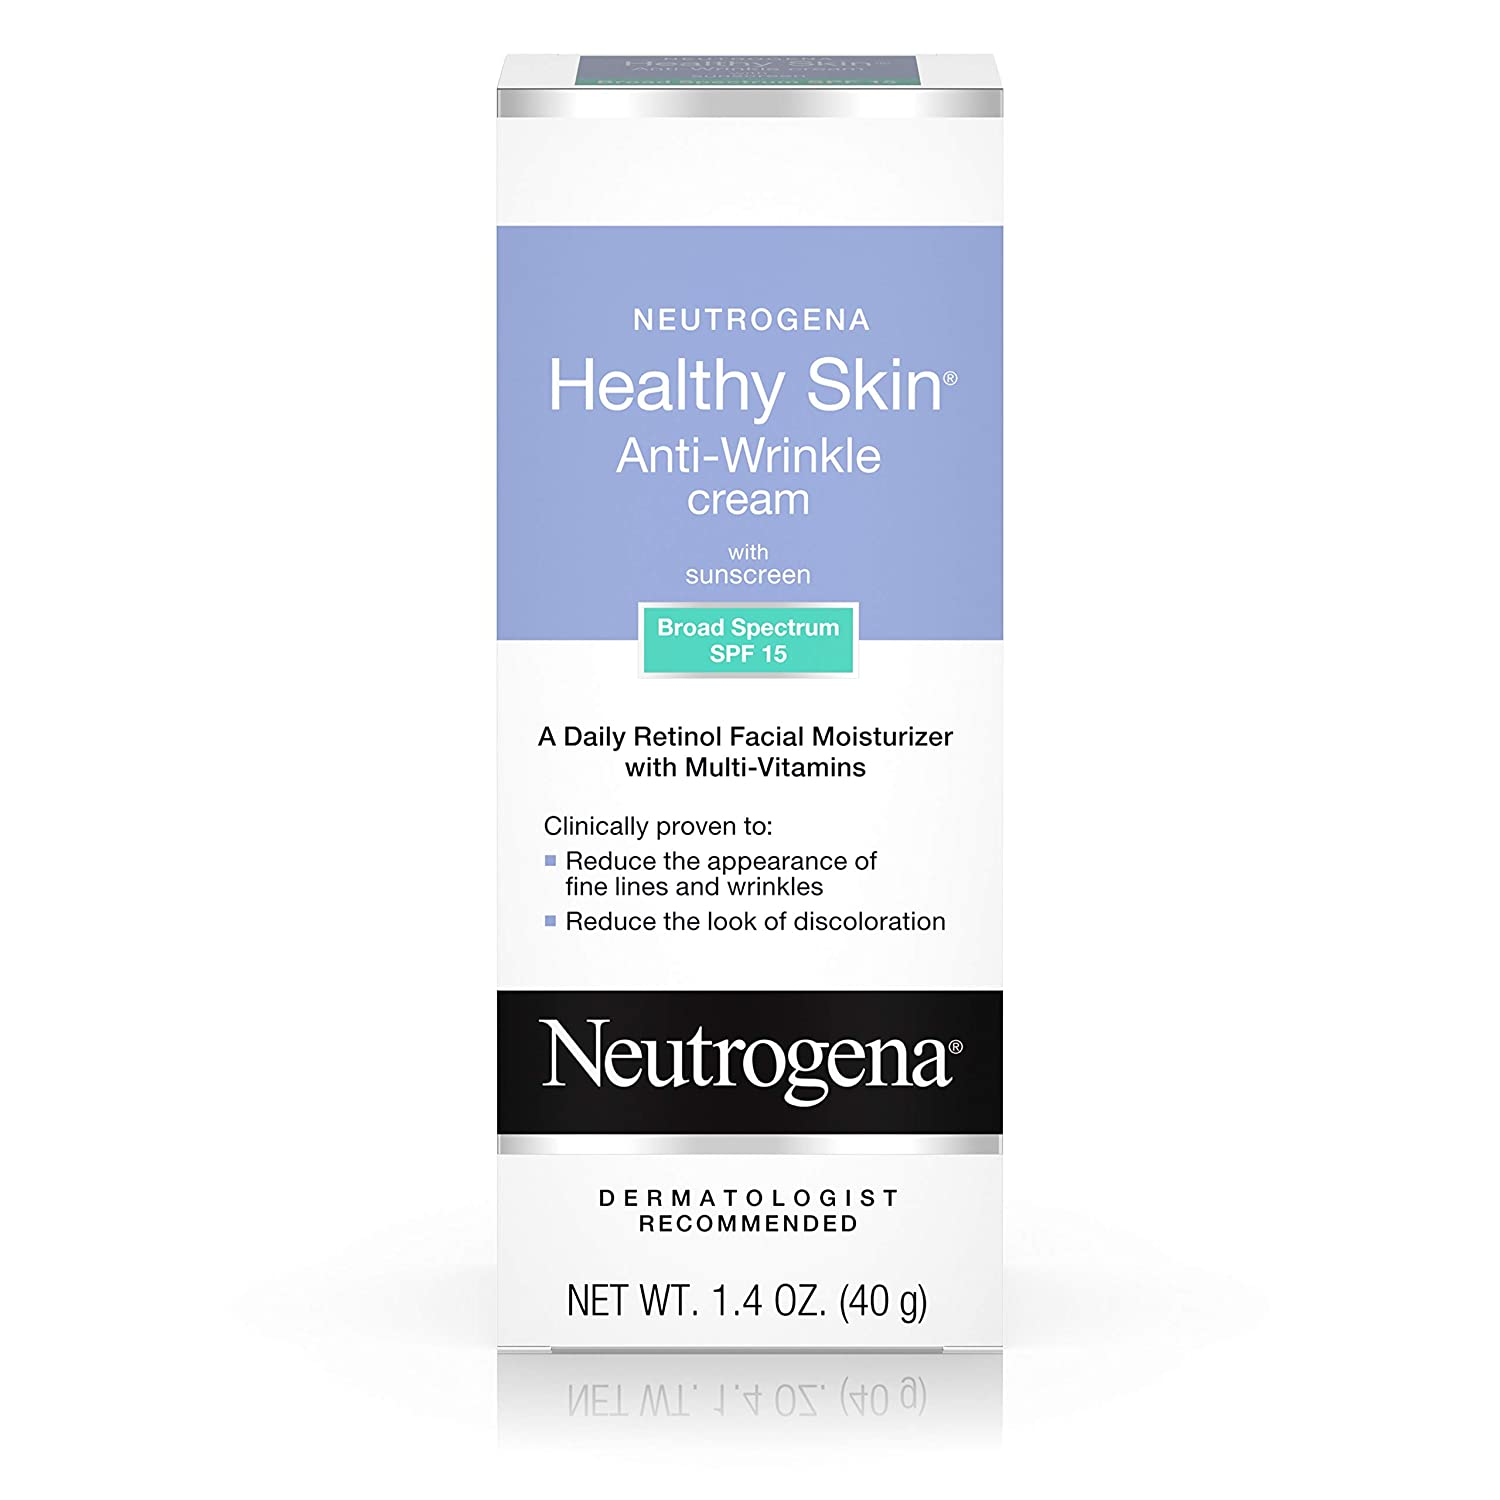 NEUTROGENA Healthy Skin Anti-Wrinkle Cream SPF15, Original Formula 1.4 oz (Pack of 3)